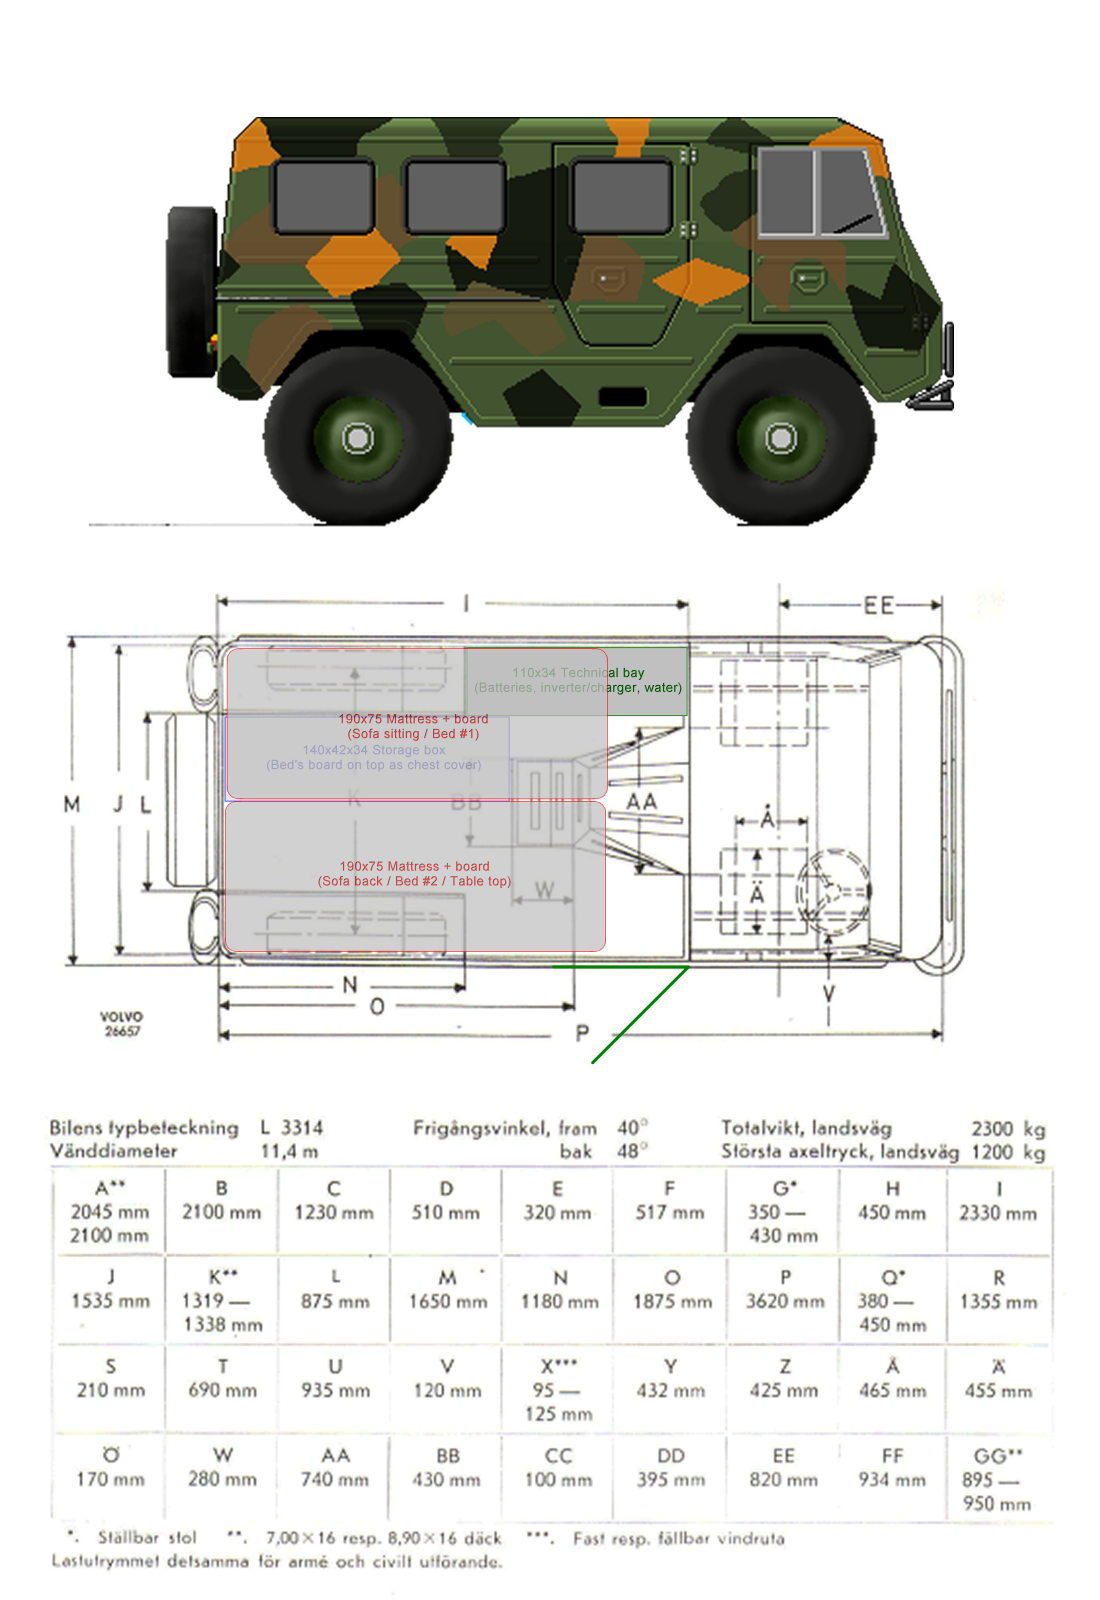 Camper conversion camper blueprints malvernweather